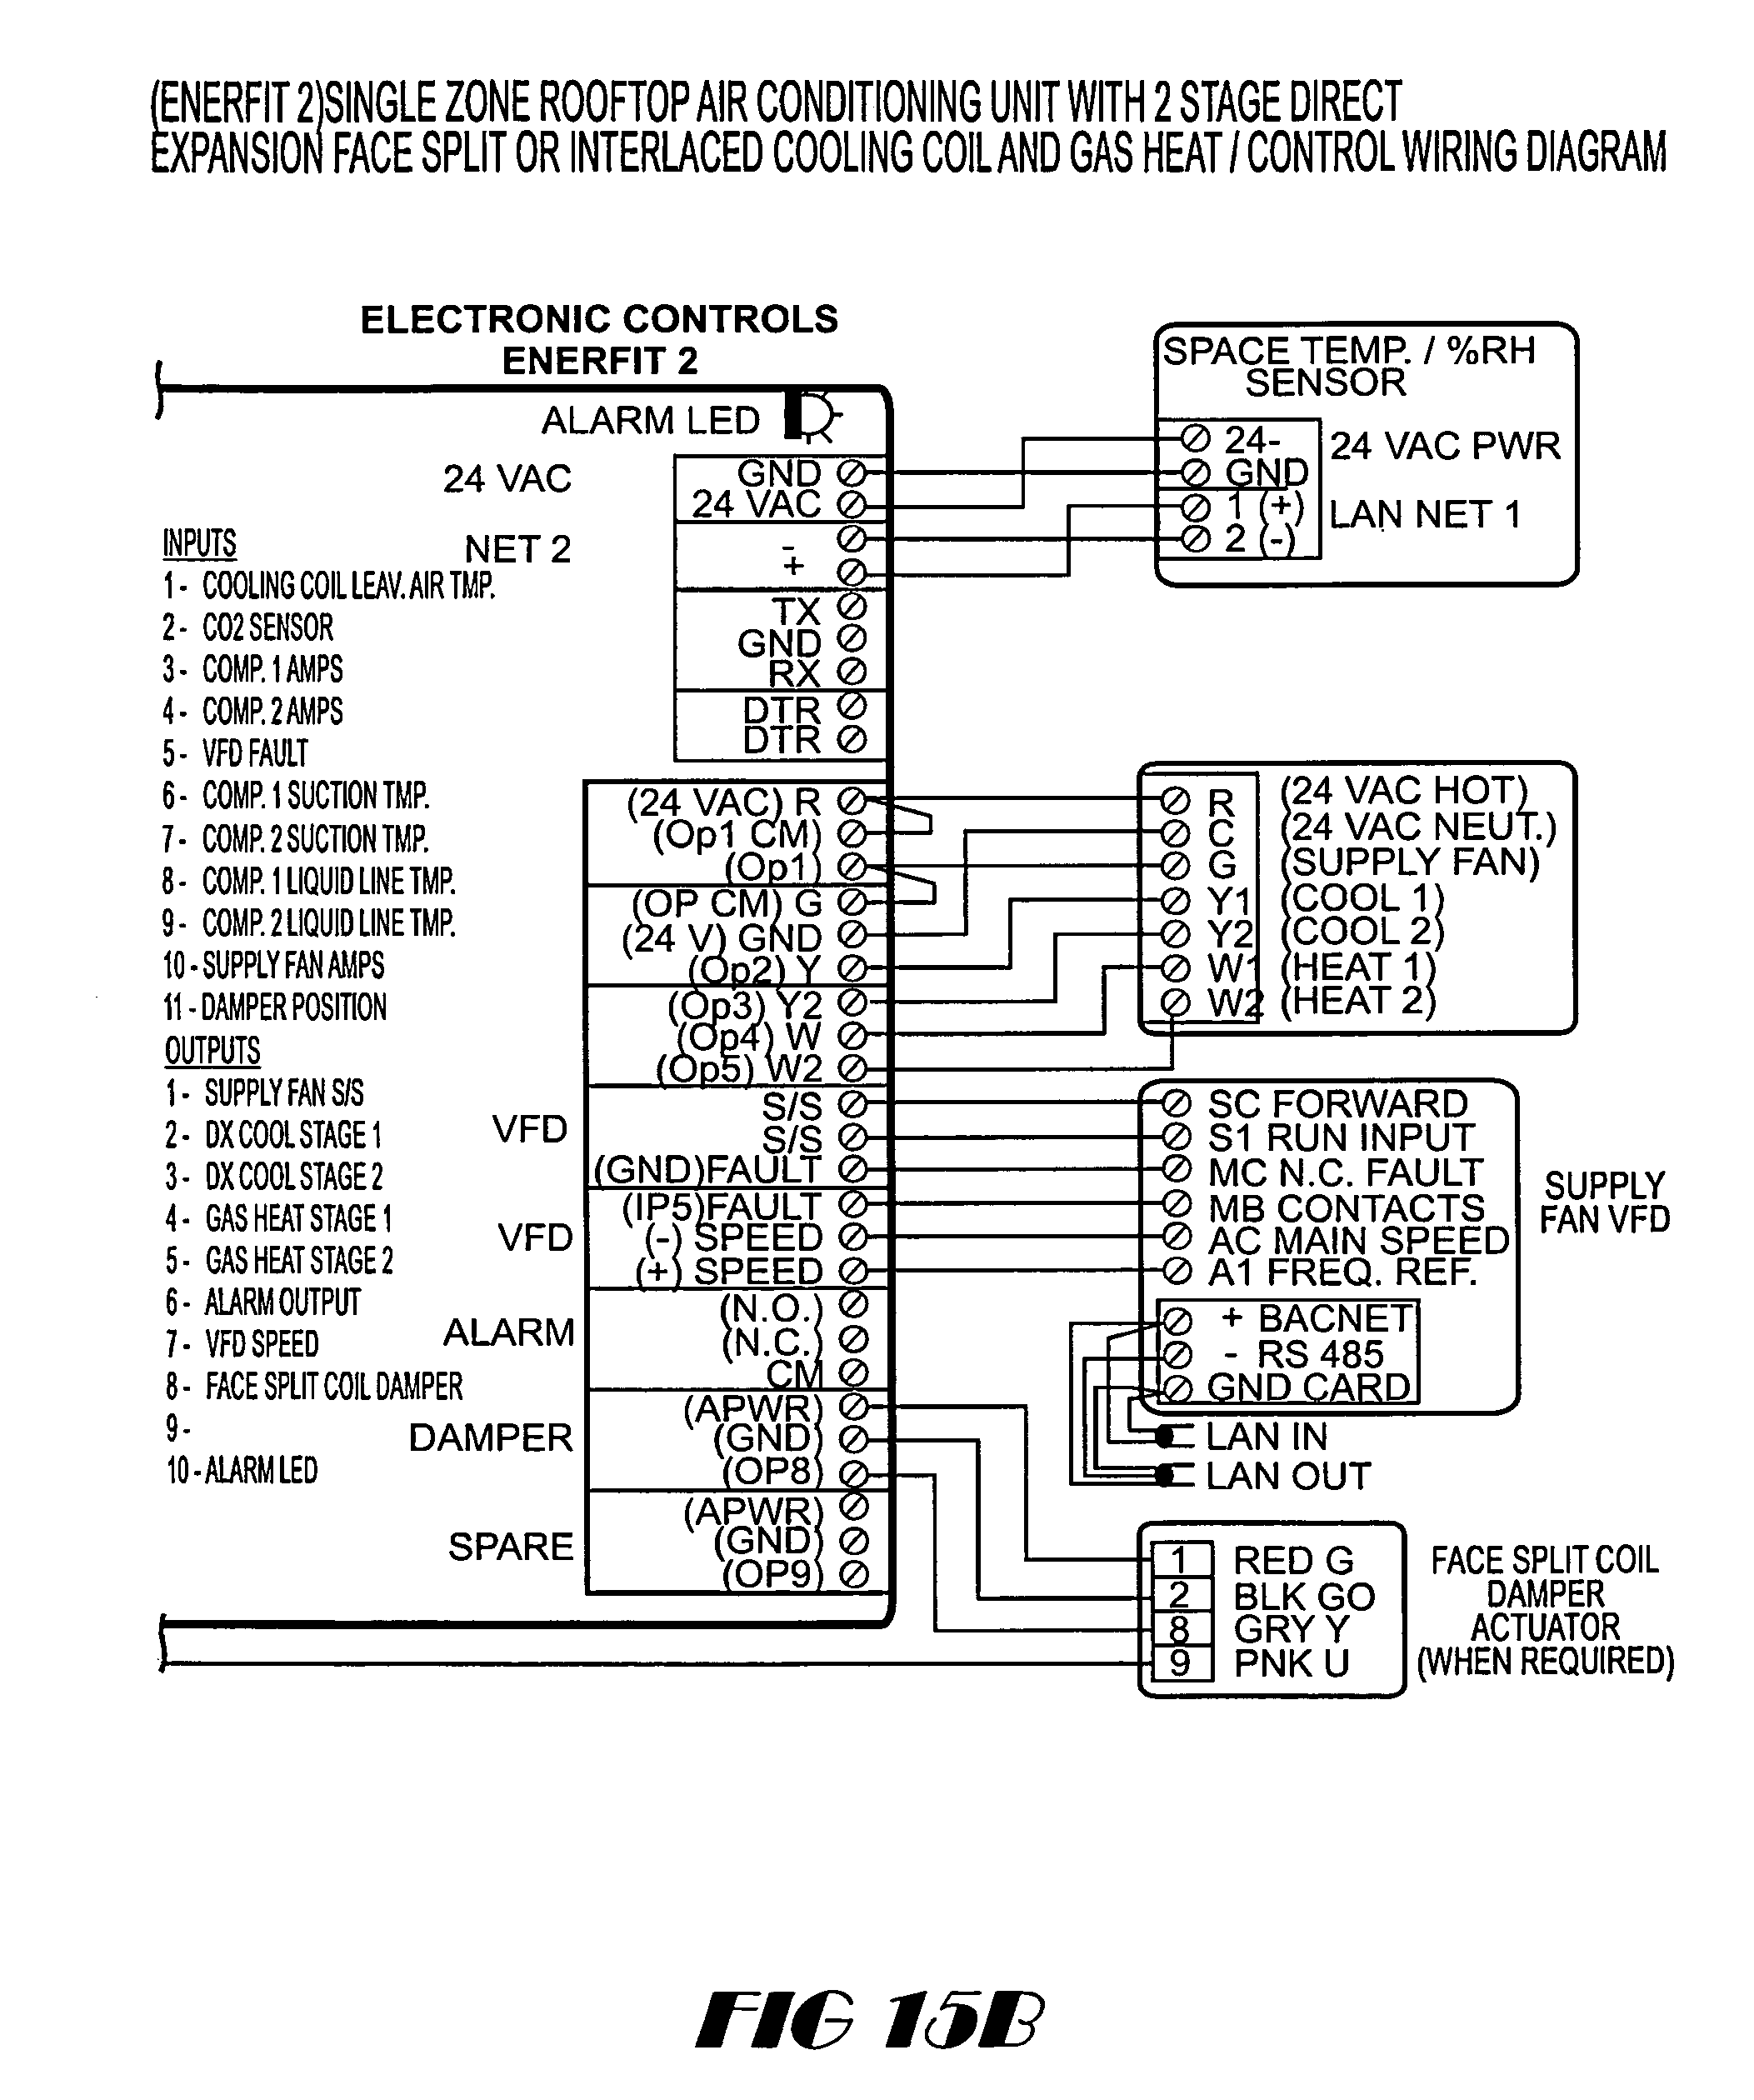 Carrier Weathermaker Bacnet Wiring Diagram Diagrams 9200 Get Free Image About 4 Wire Communication